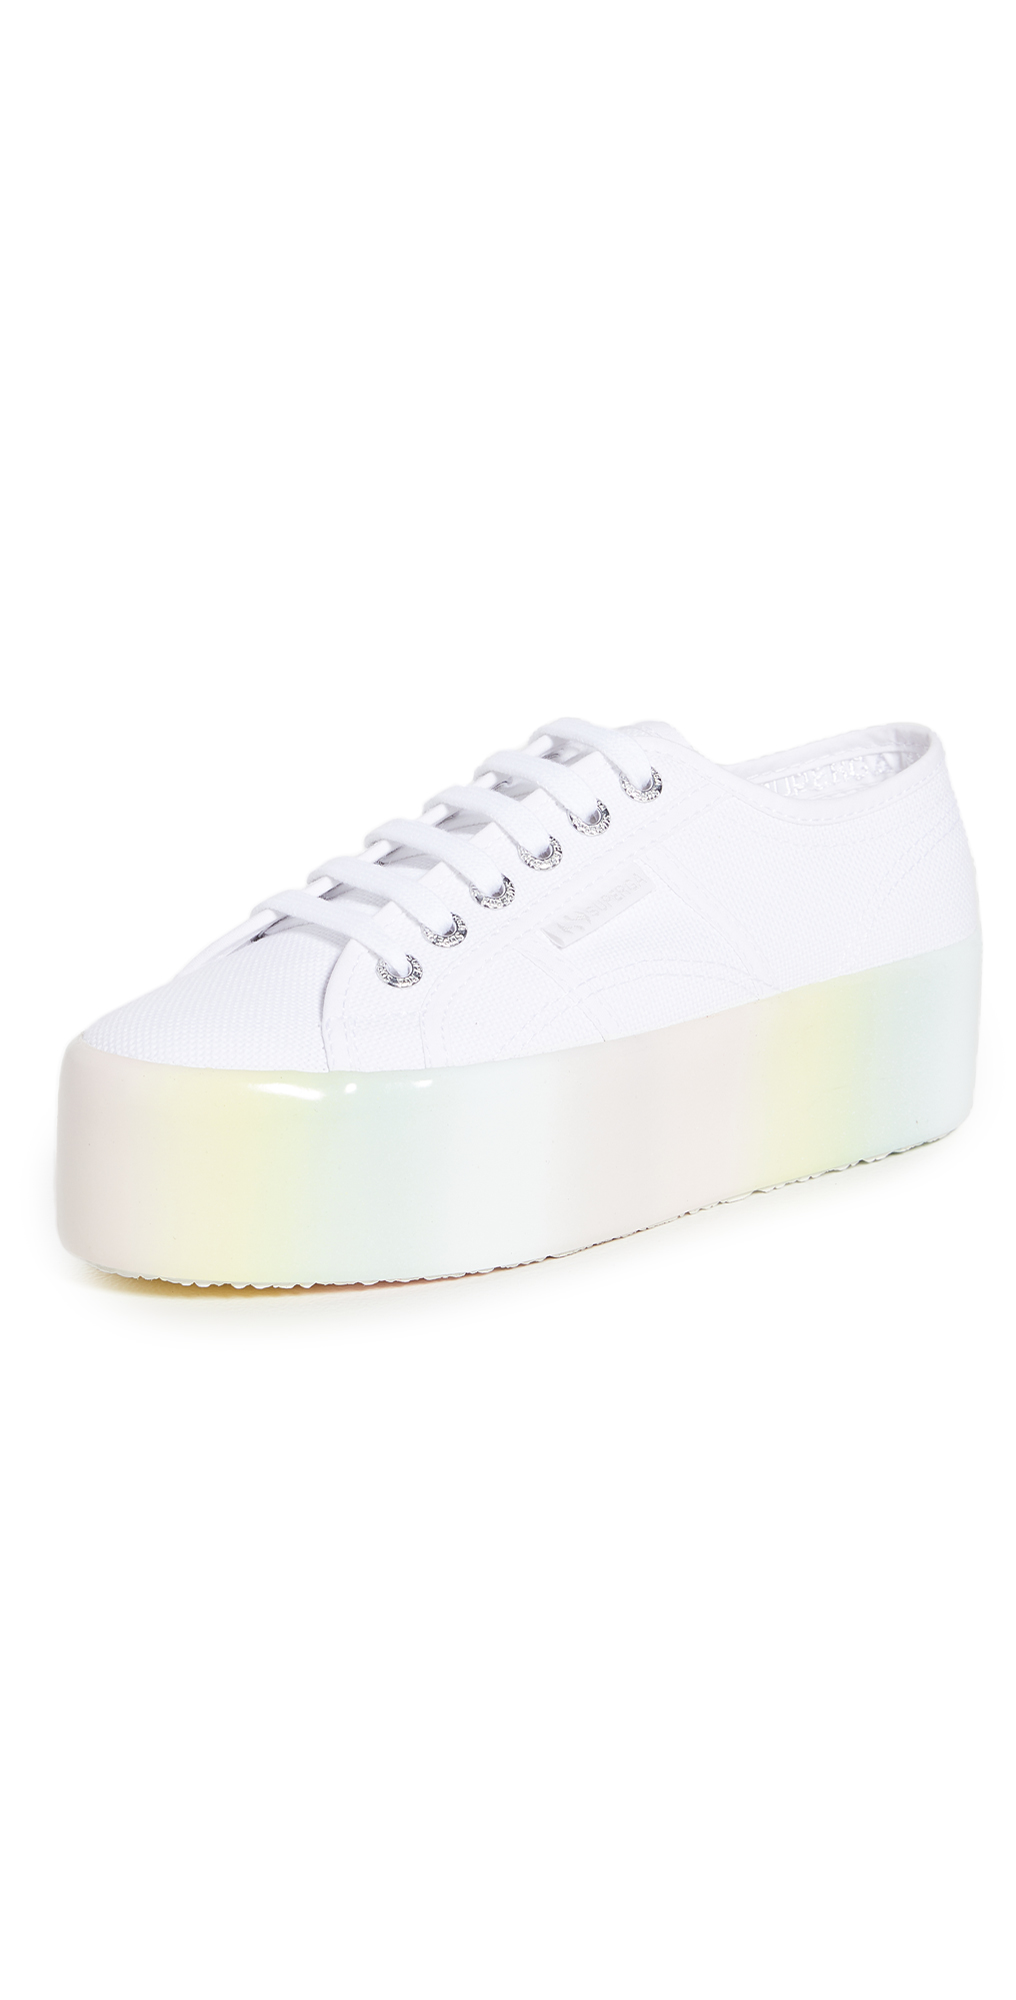 Superga 2790 Sneakers with Gradient Foxing